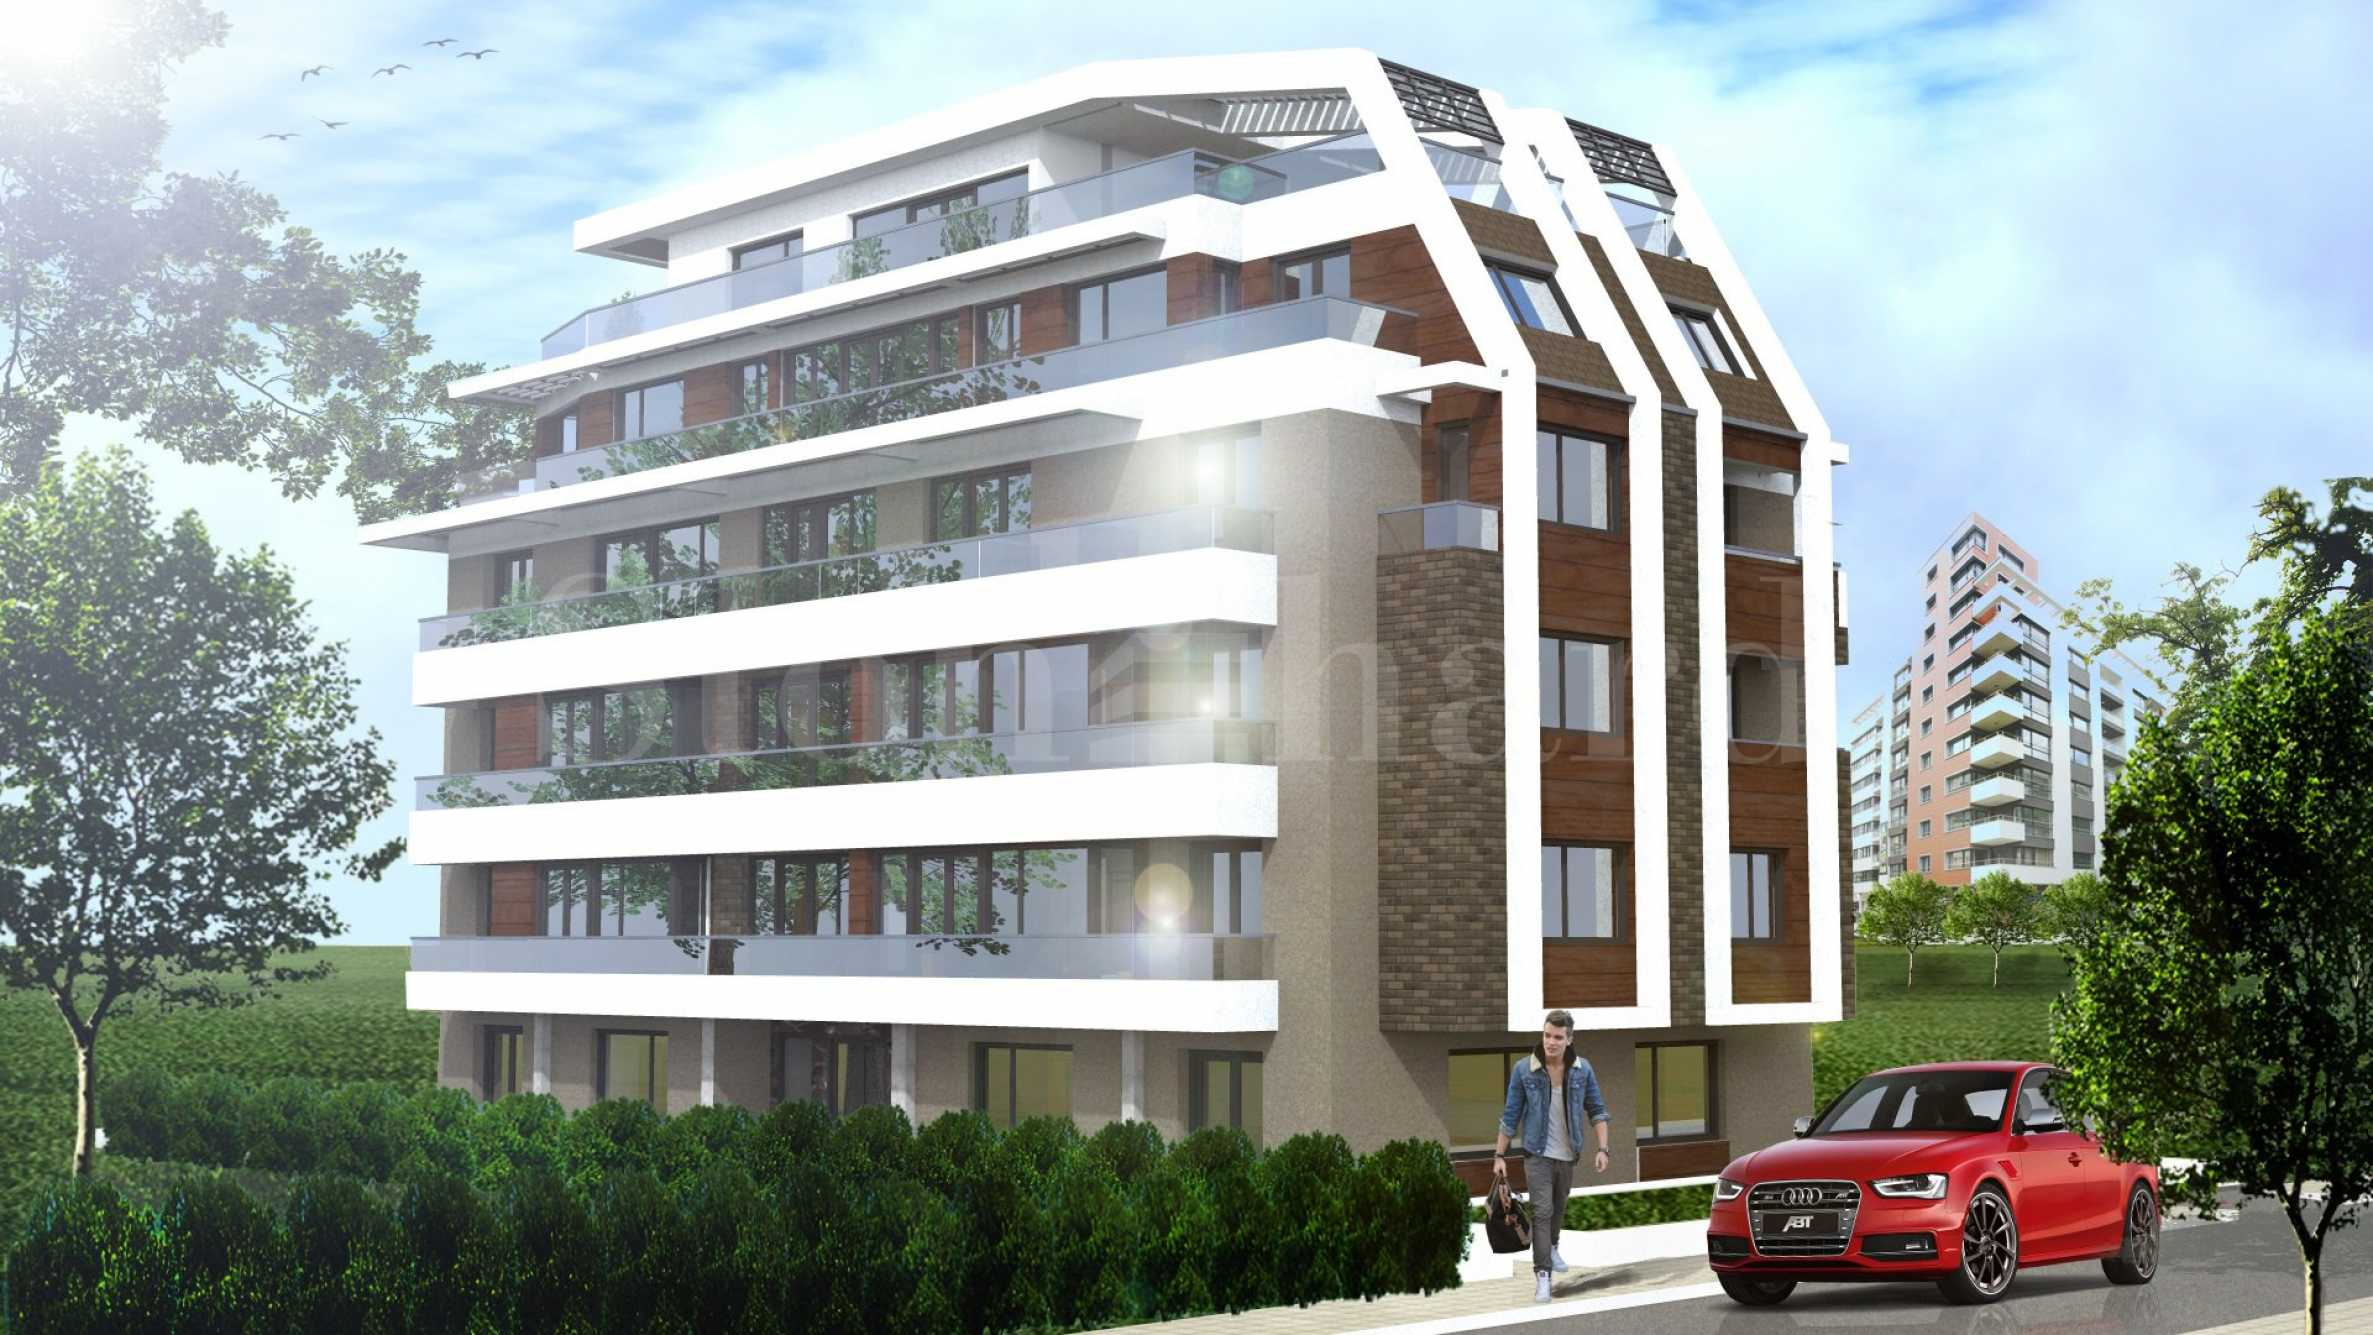 Spacious apartments in a new attractive building near parks2 - Stonehard